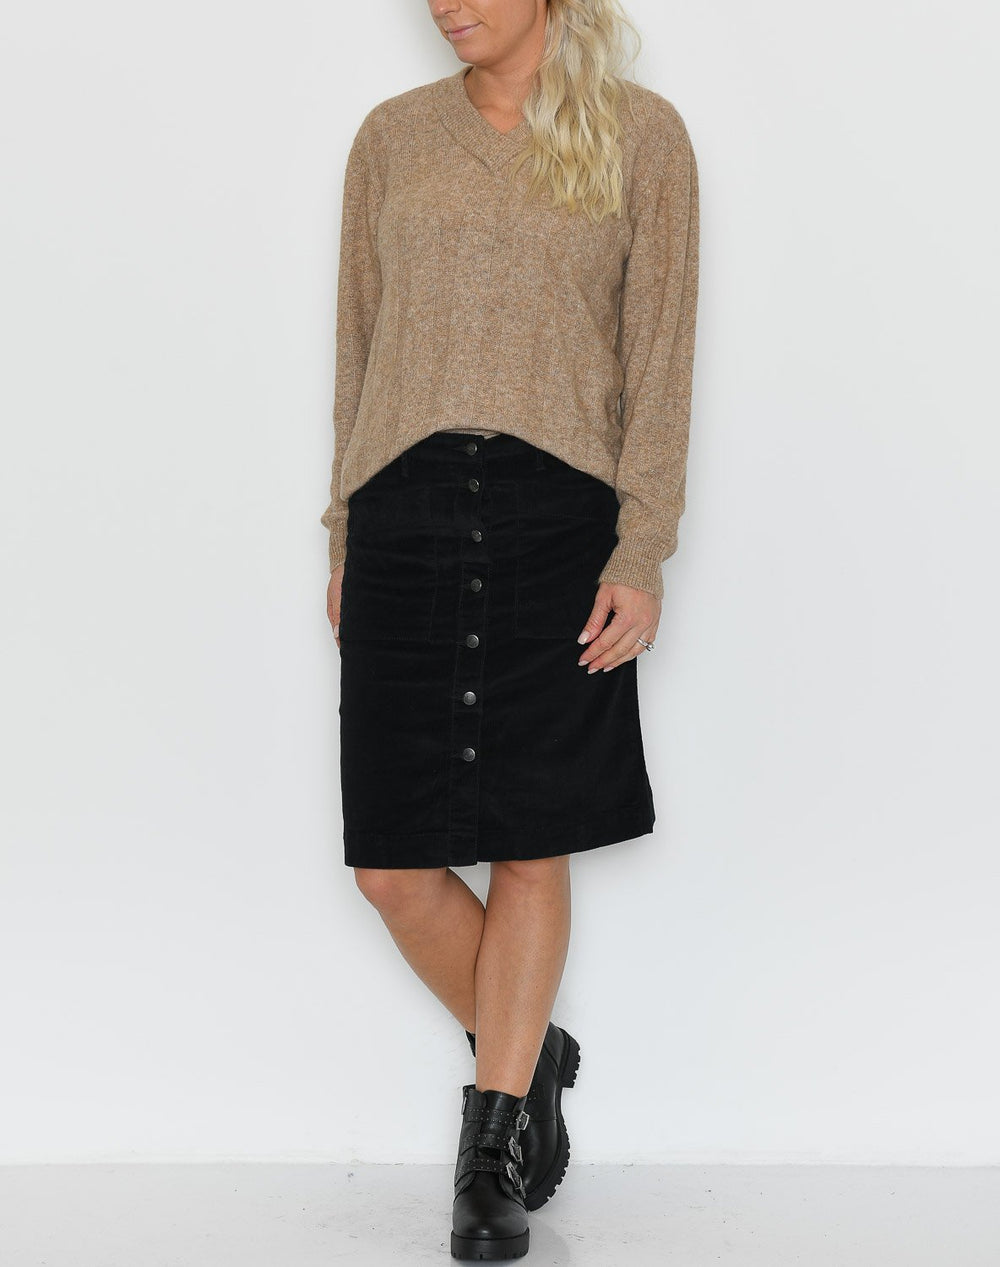 Soya Bailey 1 skirt black - Online-Mode